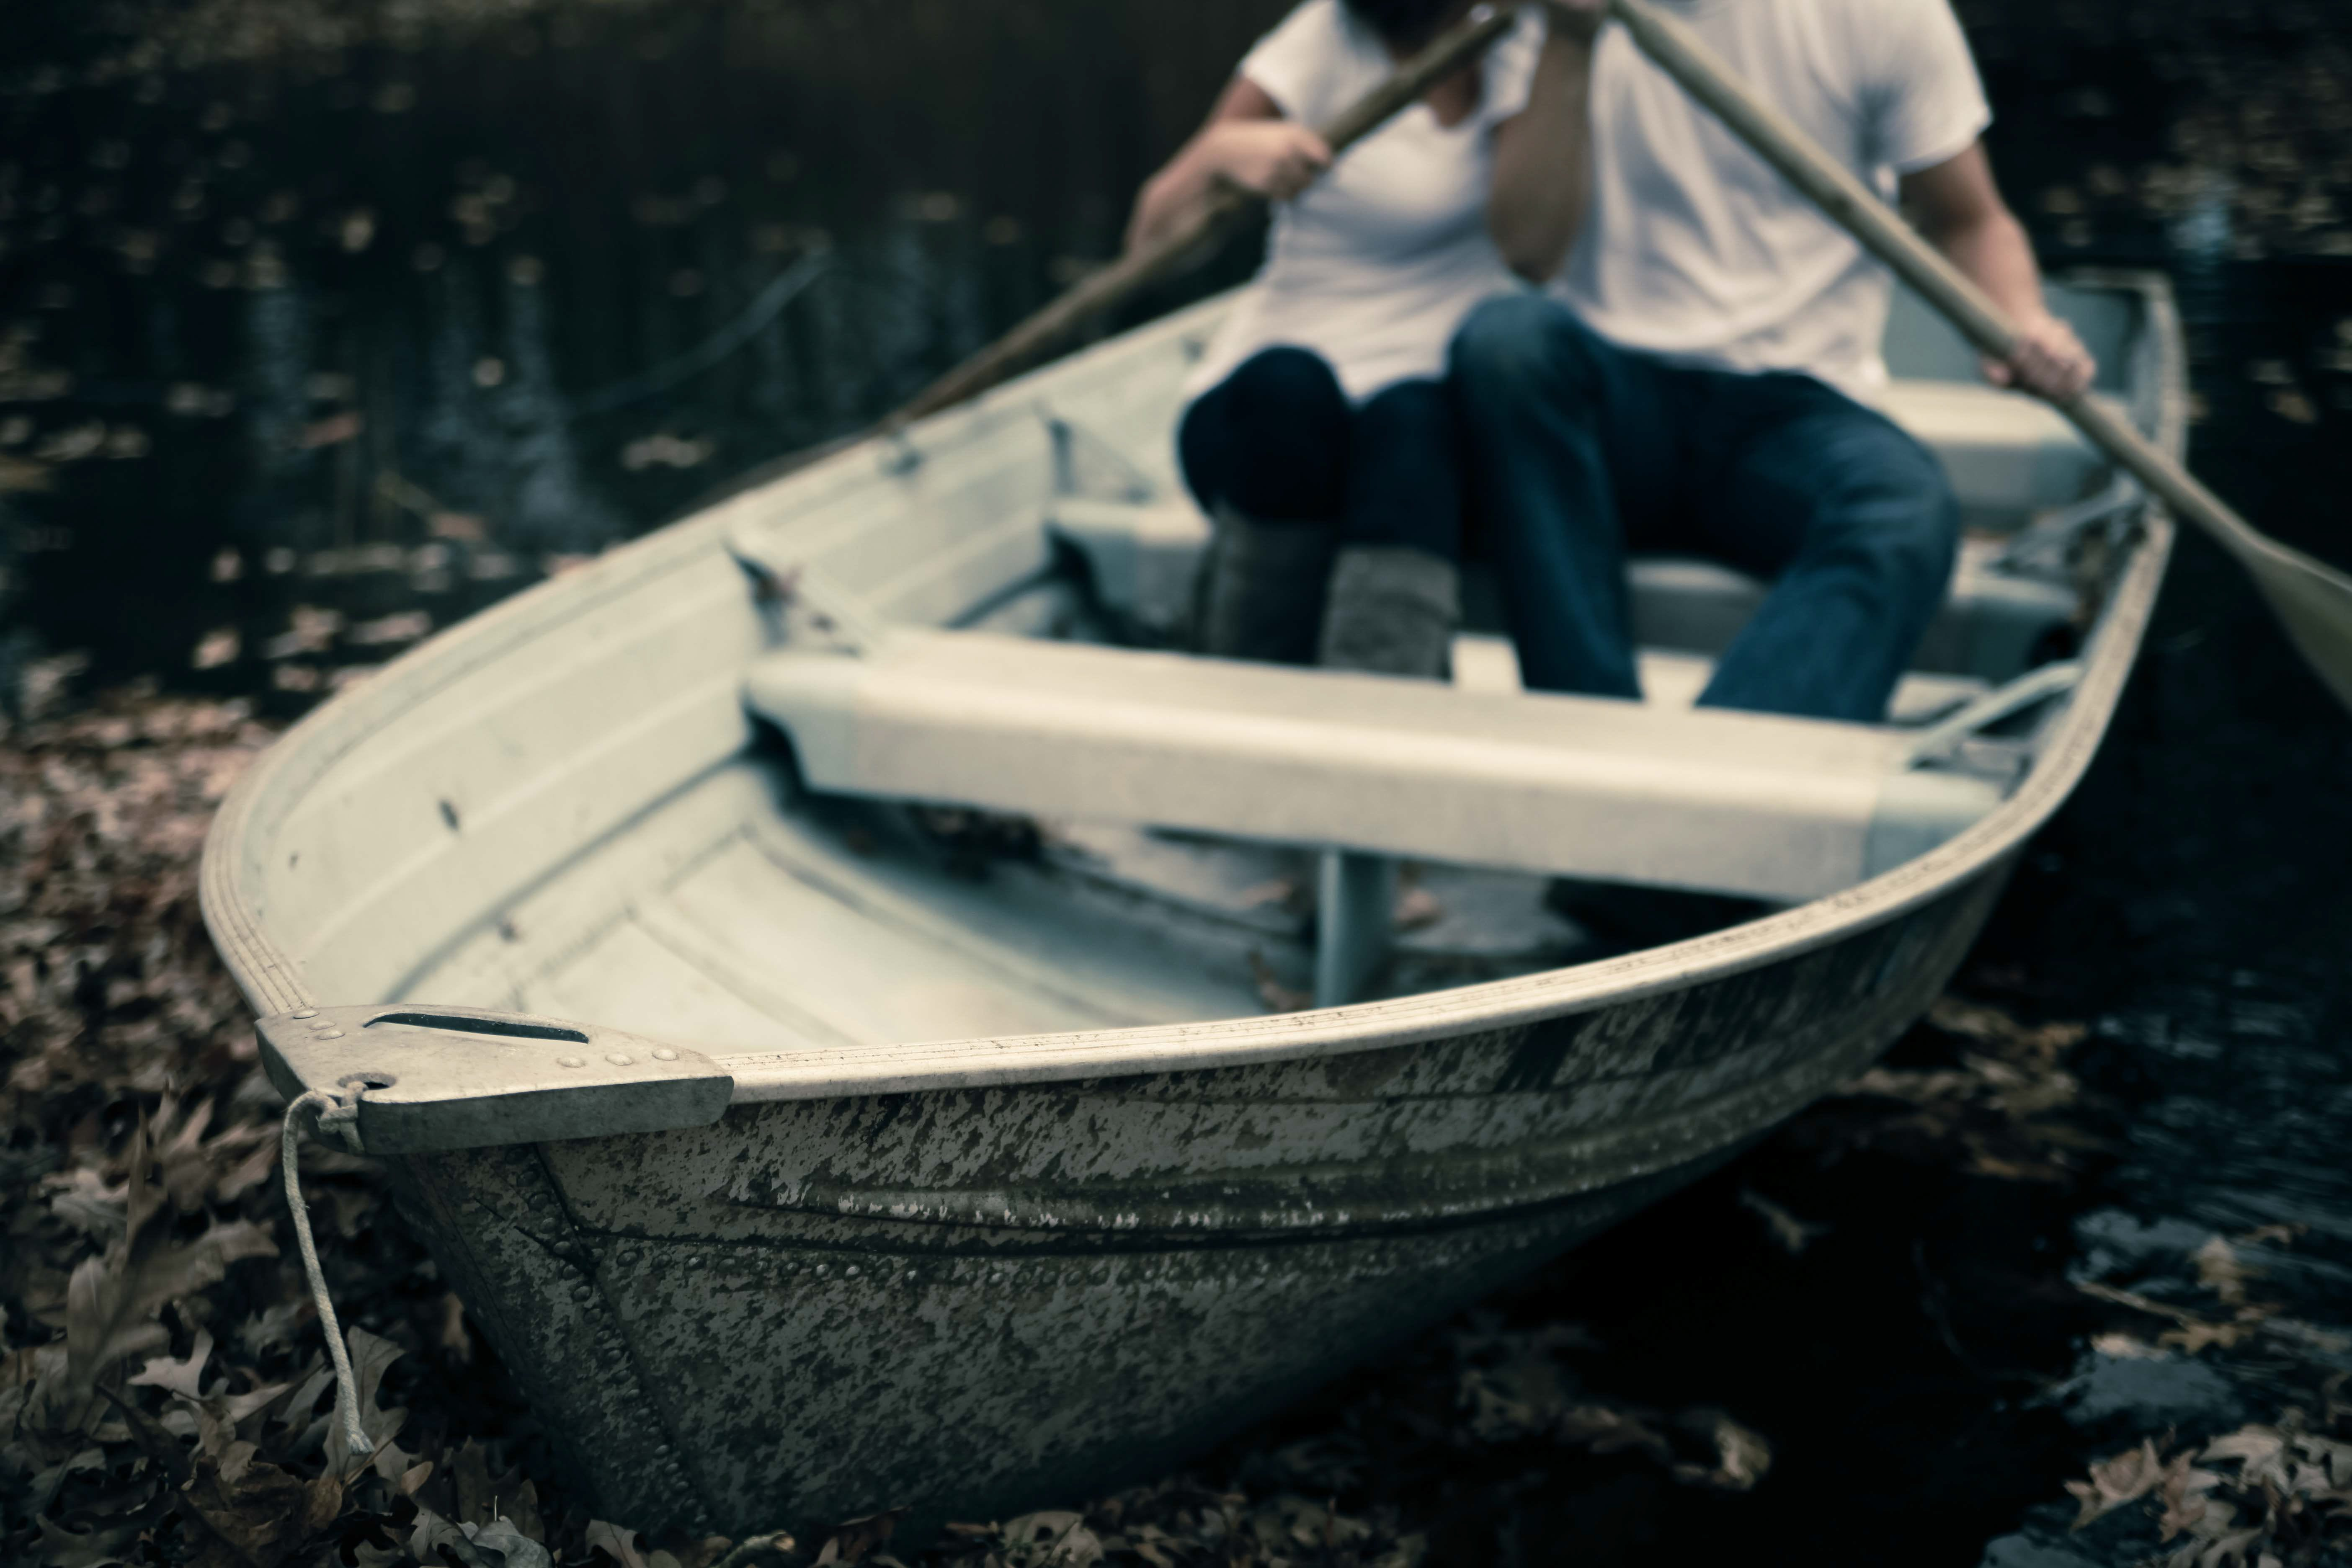 Man and Woman Sitting on Boat Holding Paddles